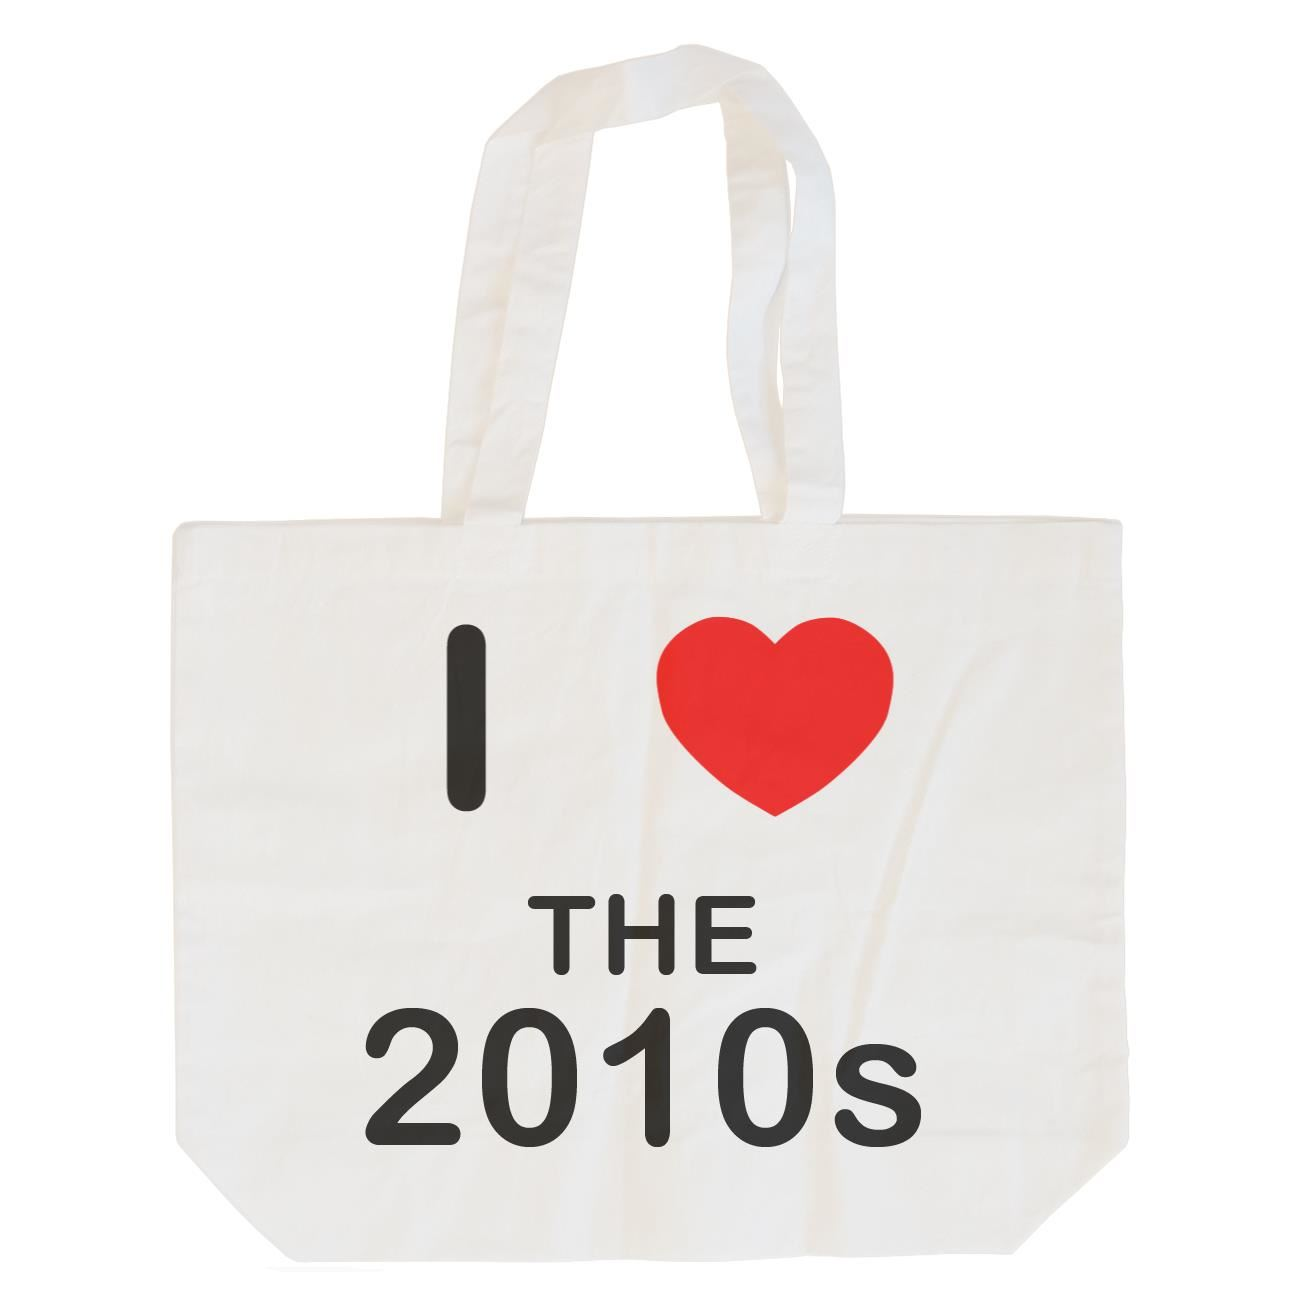 I Love The 2010's - Cotton Bag | Size choice Tote, Shopper or Sling